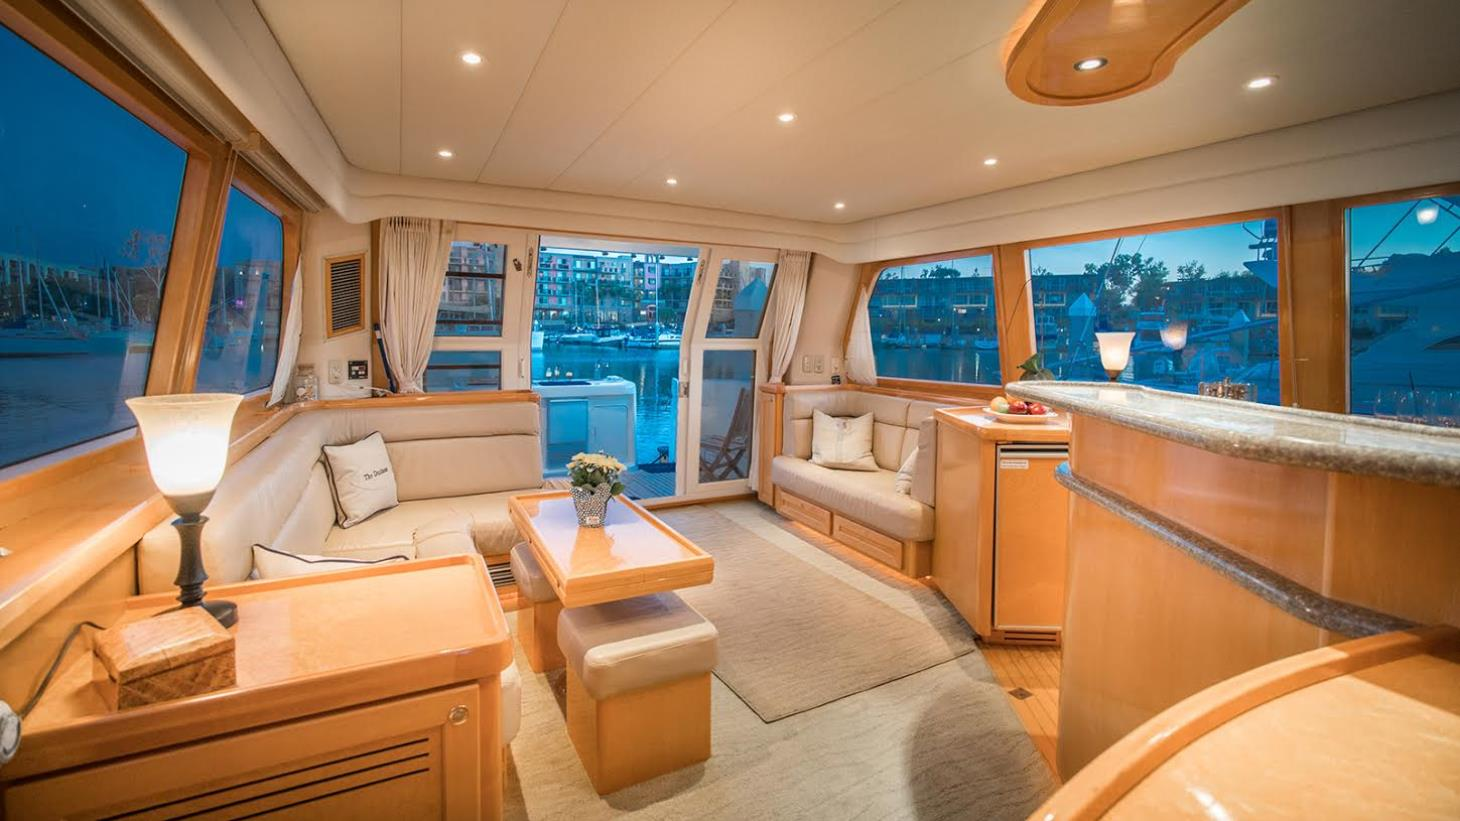 The Duchess Yacht Charter Service image 8